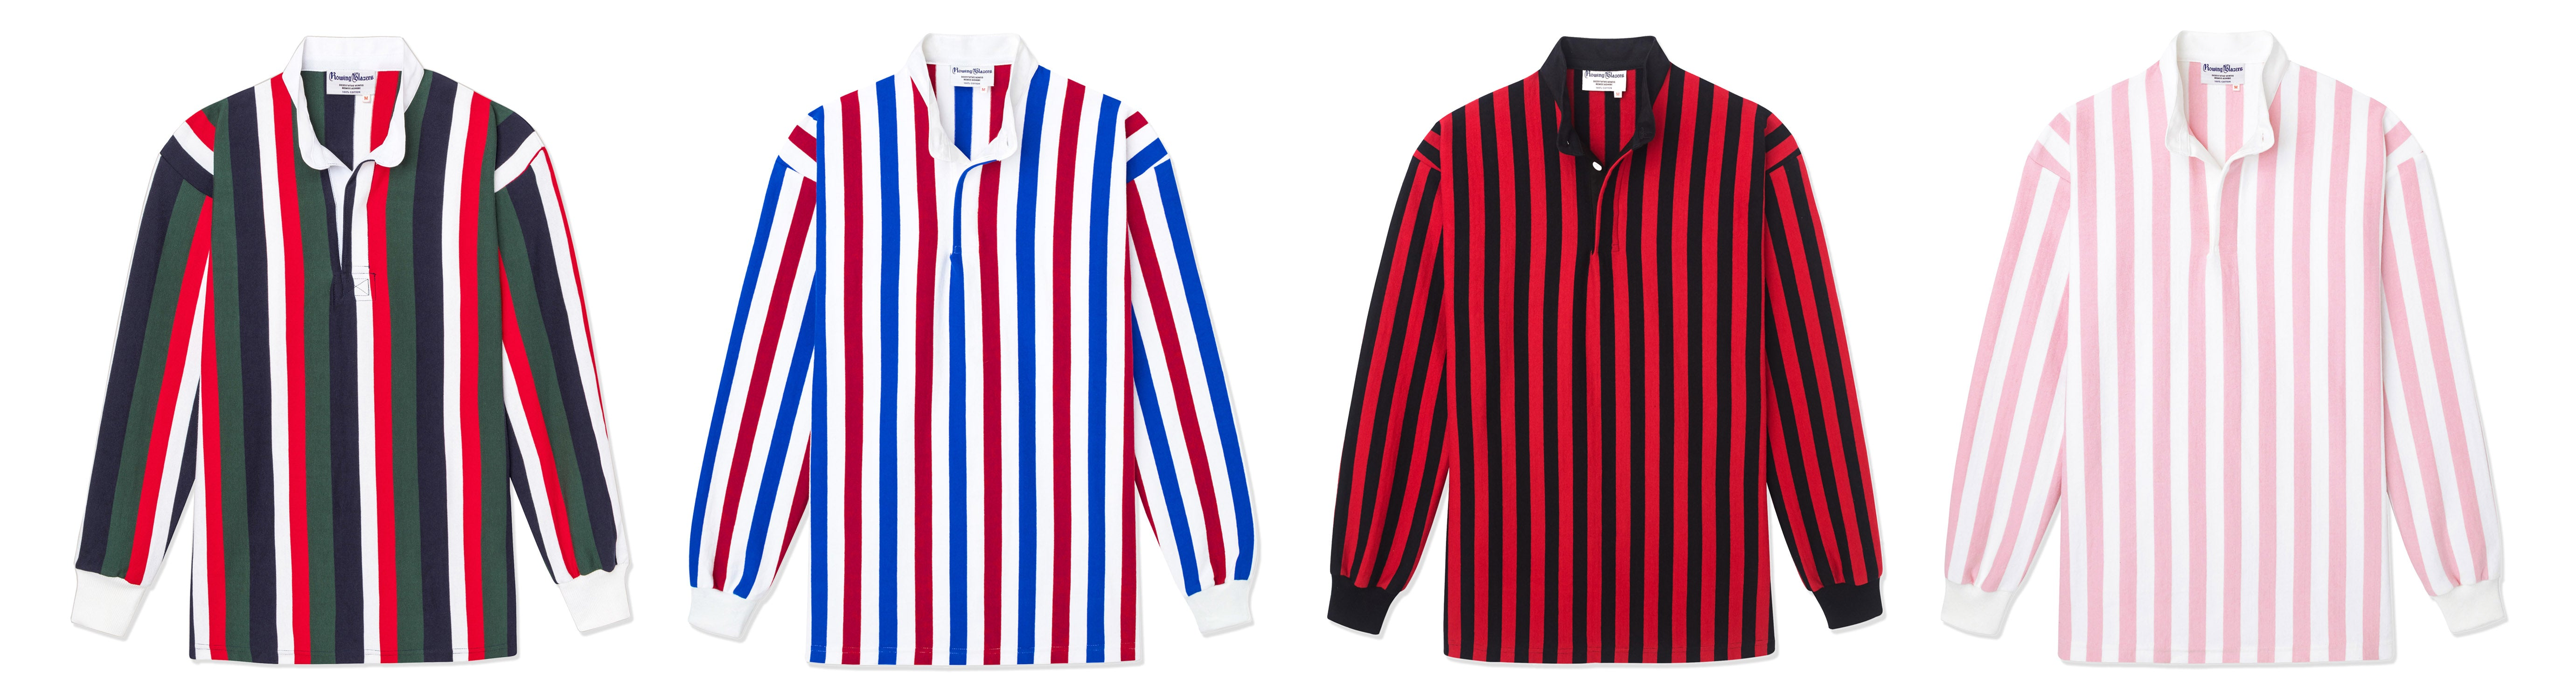 a71e35e18 THE SOCCER SHIRT (Four new SS19 styles available now)